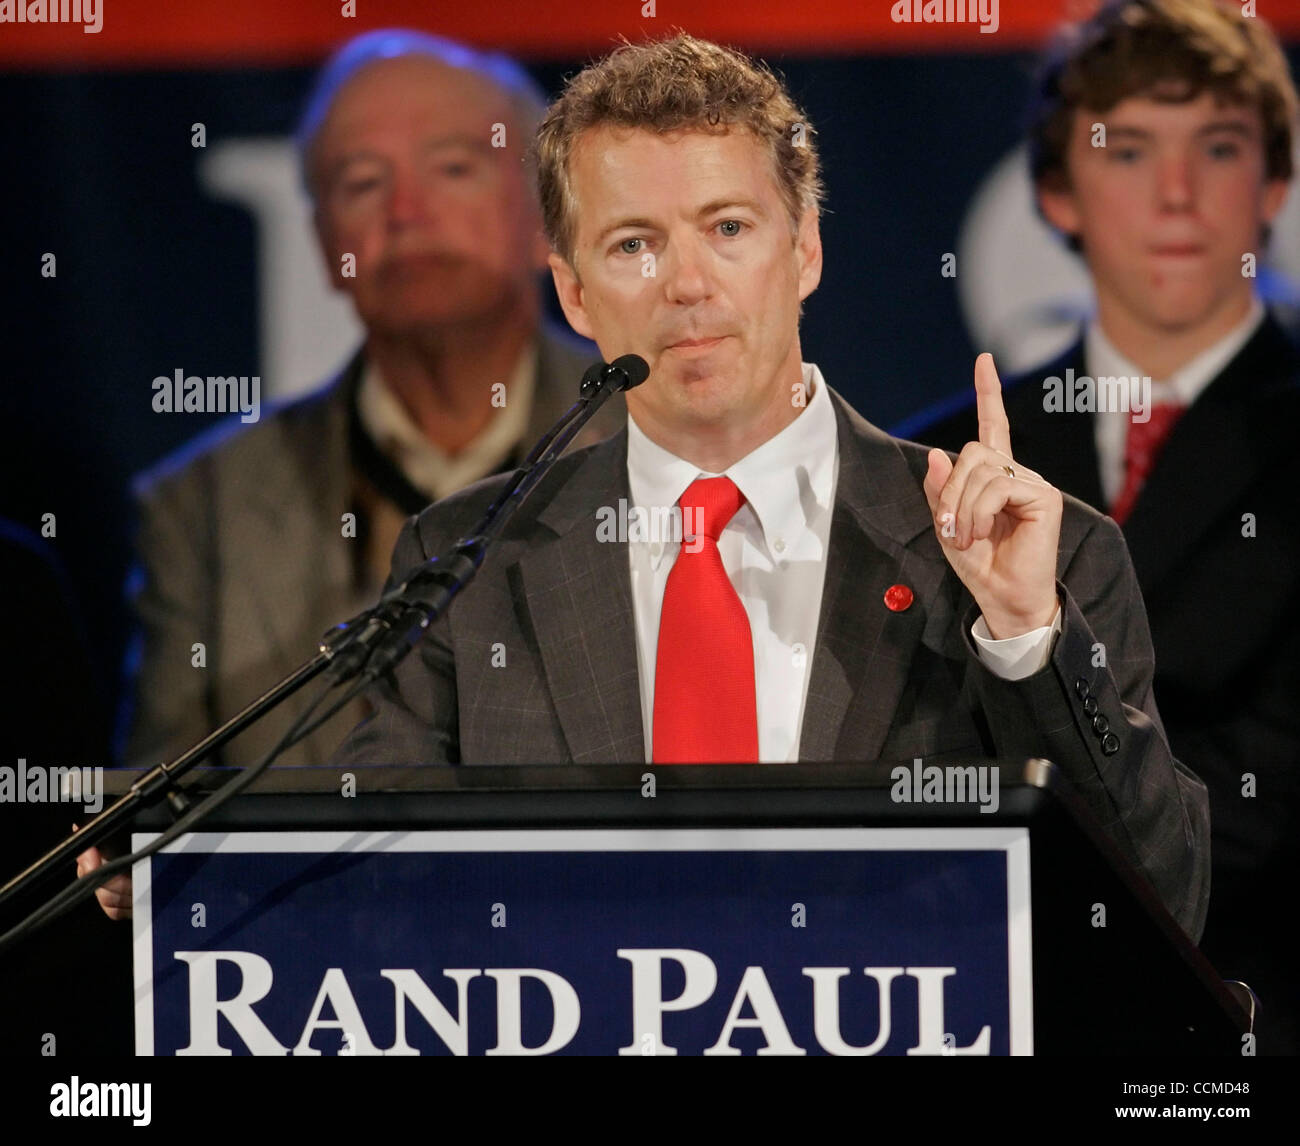 republican senator elect rand paul speaks during an election night